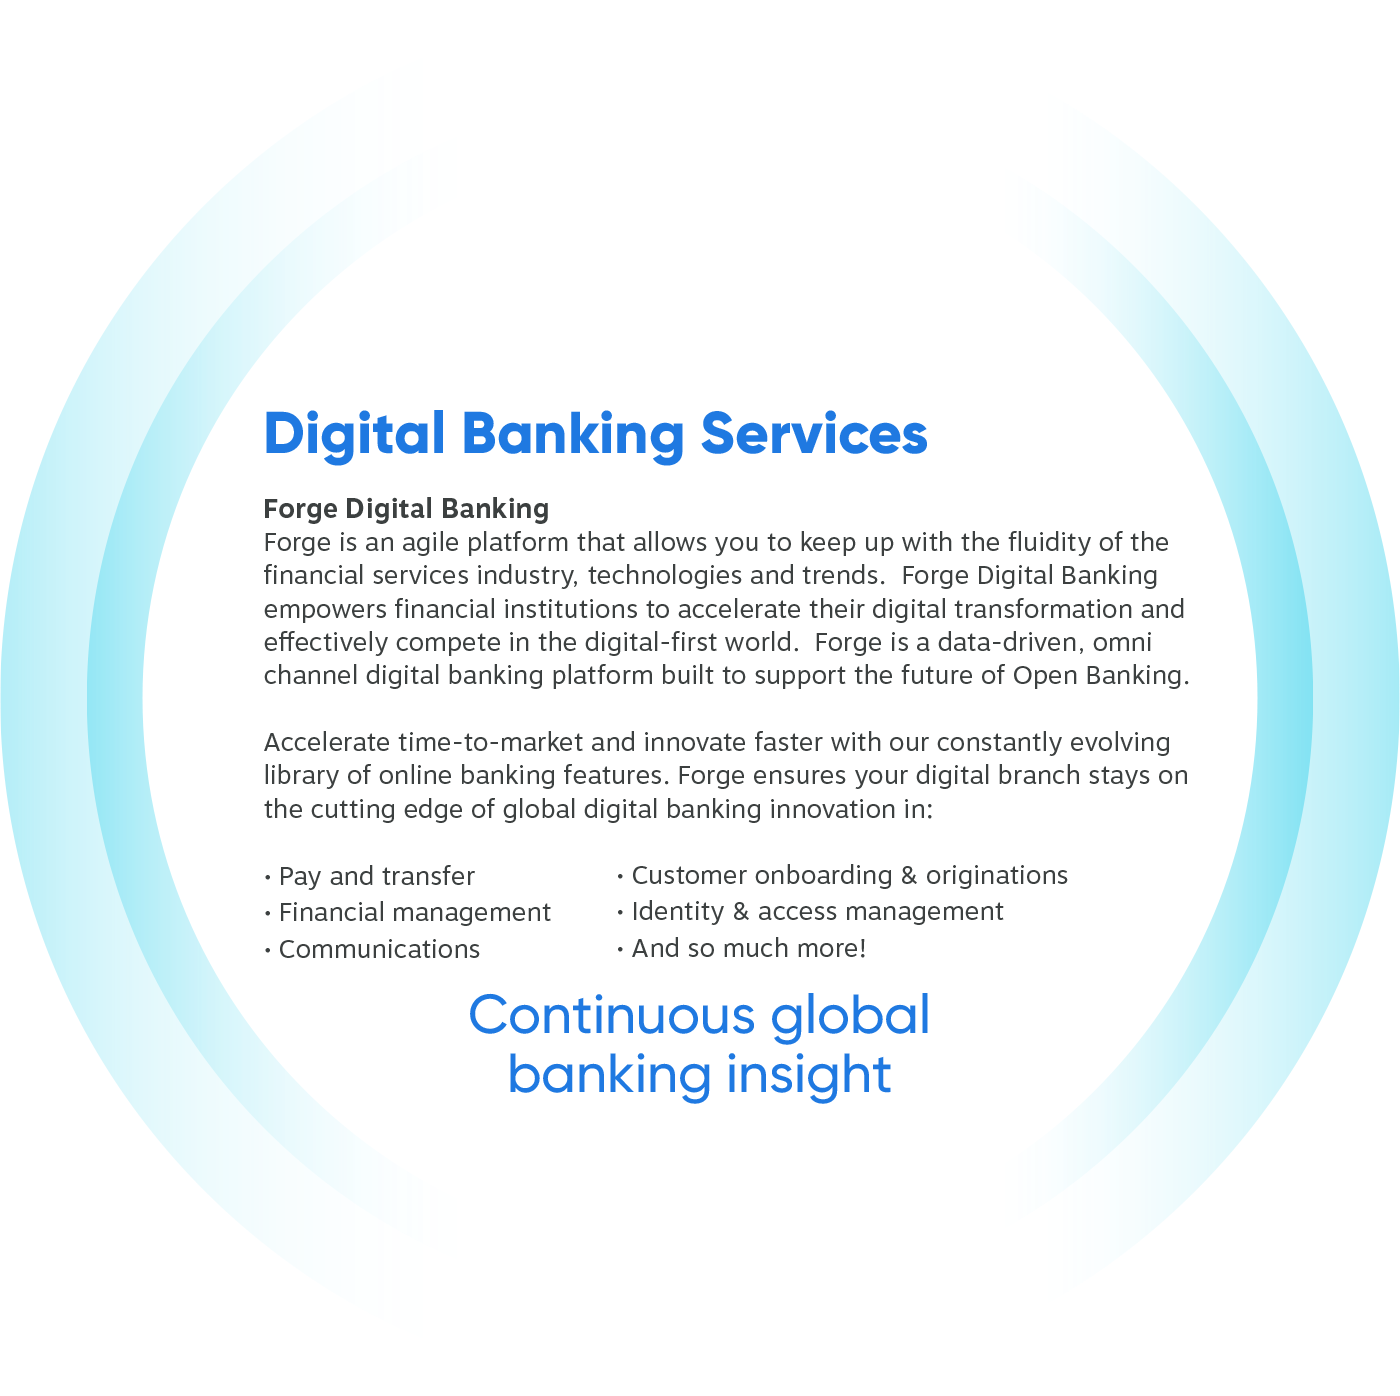 Digital Banking Services Layer